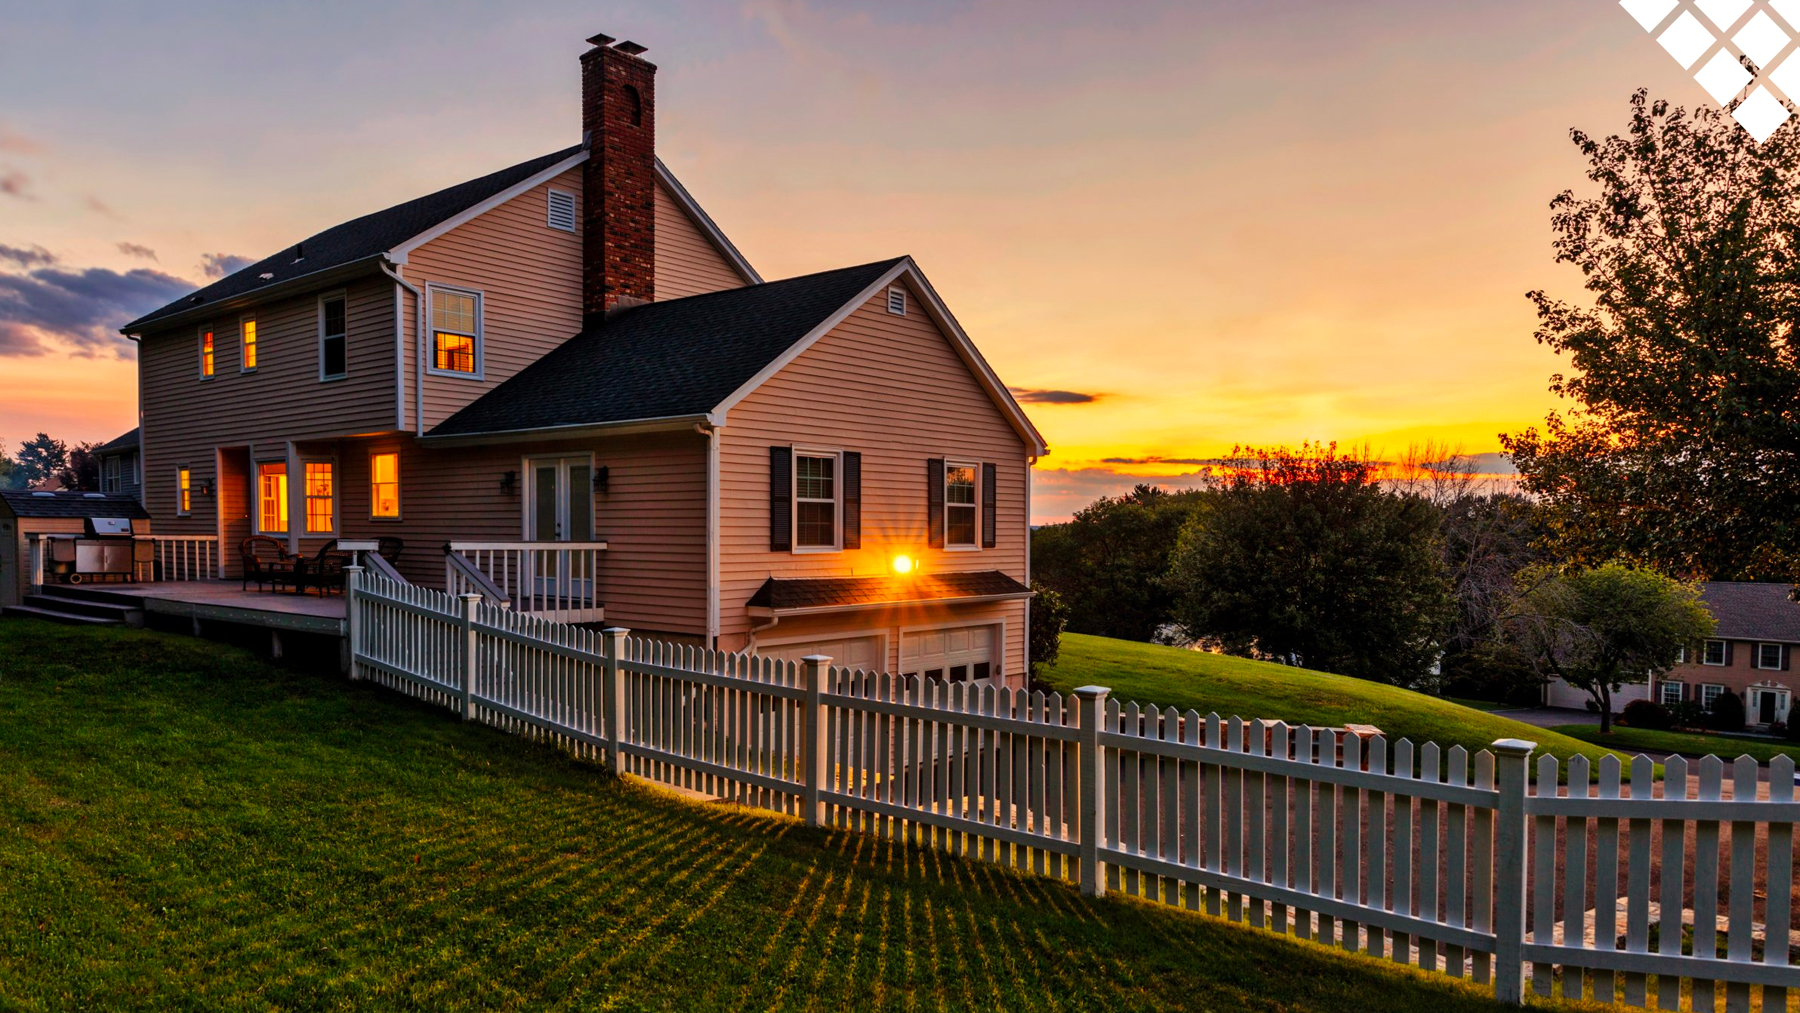 Sunsetting on landscape of home with porch, chimney and picket fence on beautiful green lawn